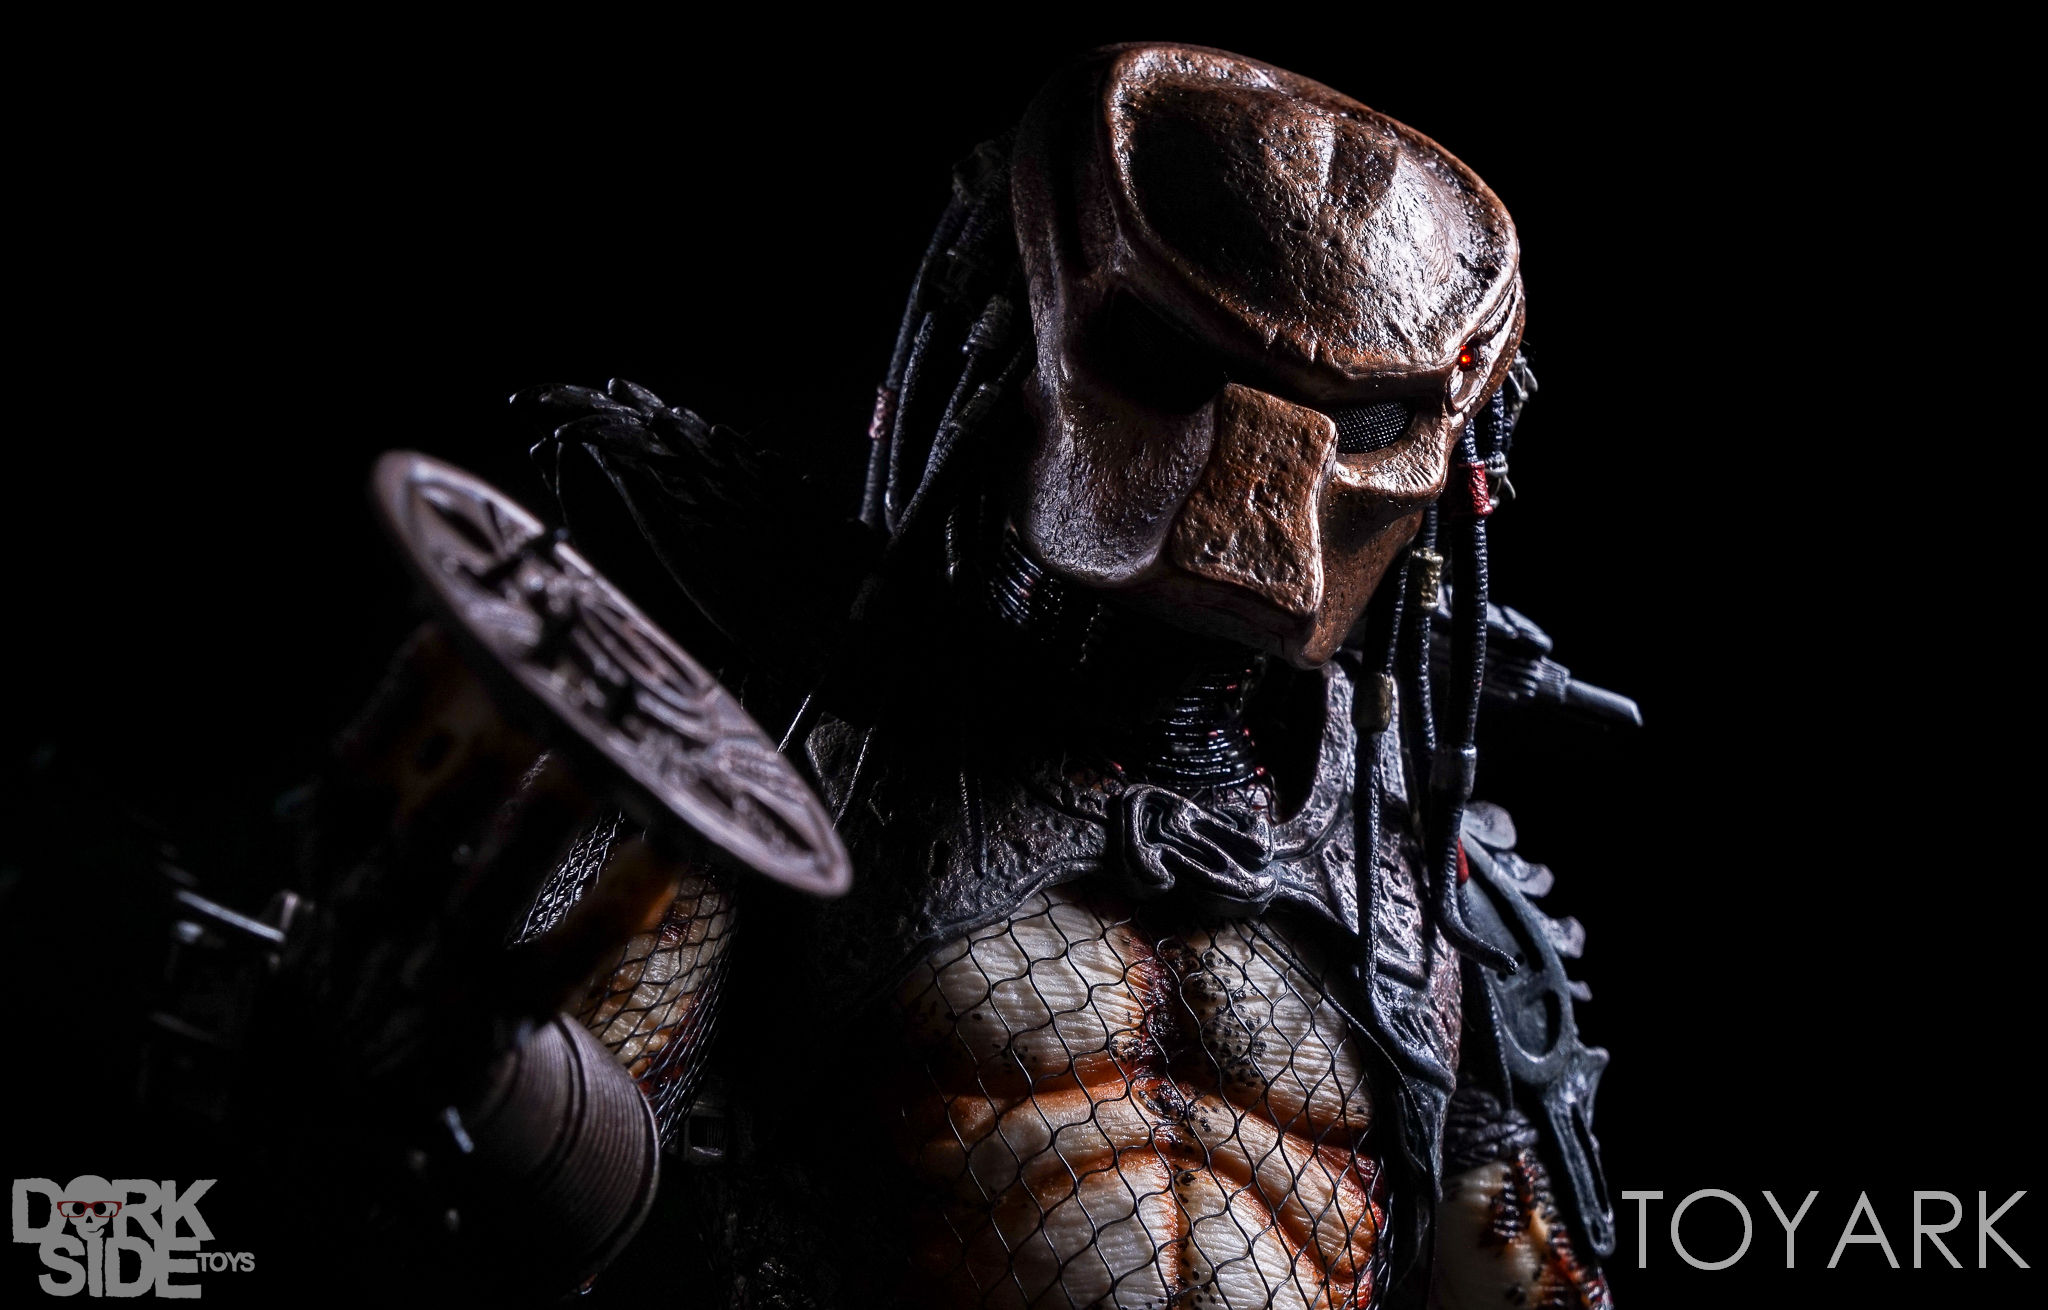 http://news.toyark.com/wp-content/uploads/sites/4/2016/12/NECA-20-Inch-City-Hunter-Predator-057.jpg